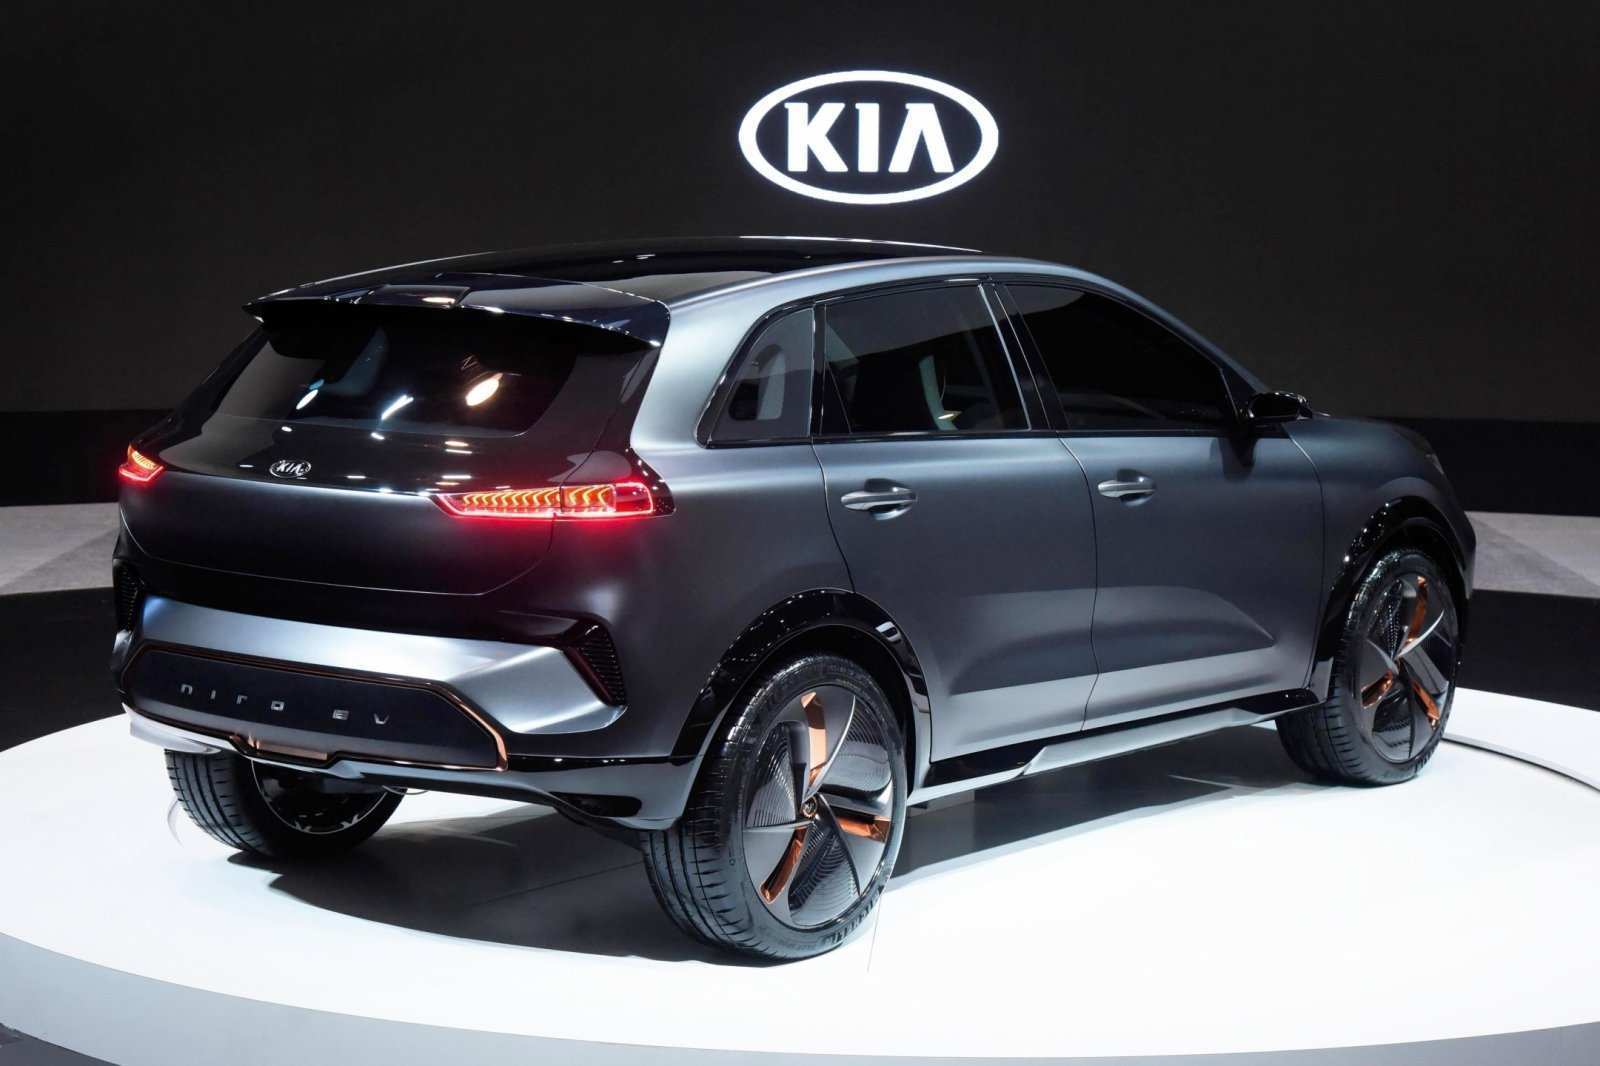 71 Great 2020 Kia Niro Price and Review by 2020 Kia Niro